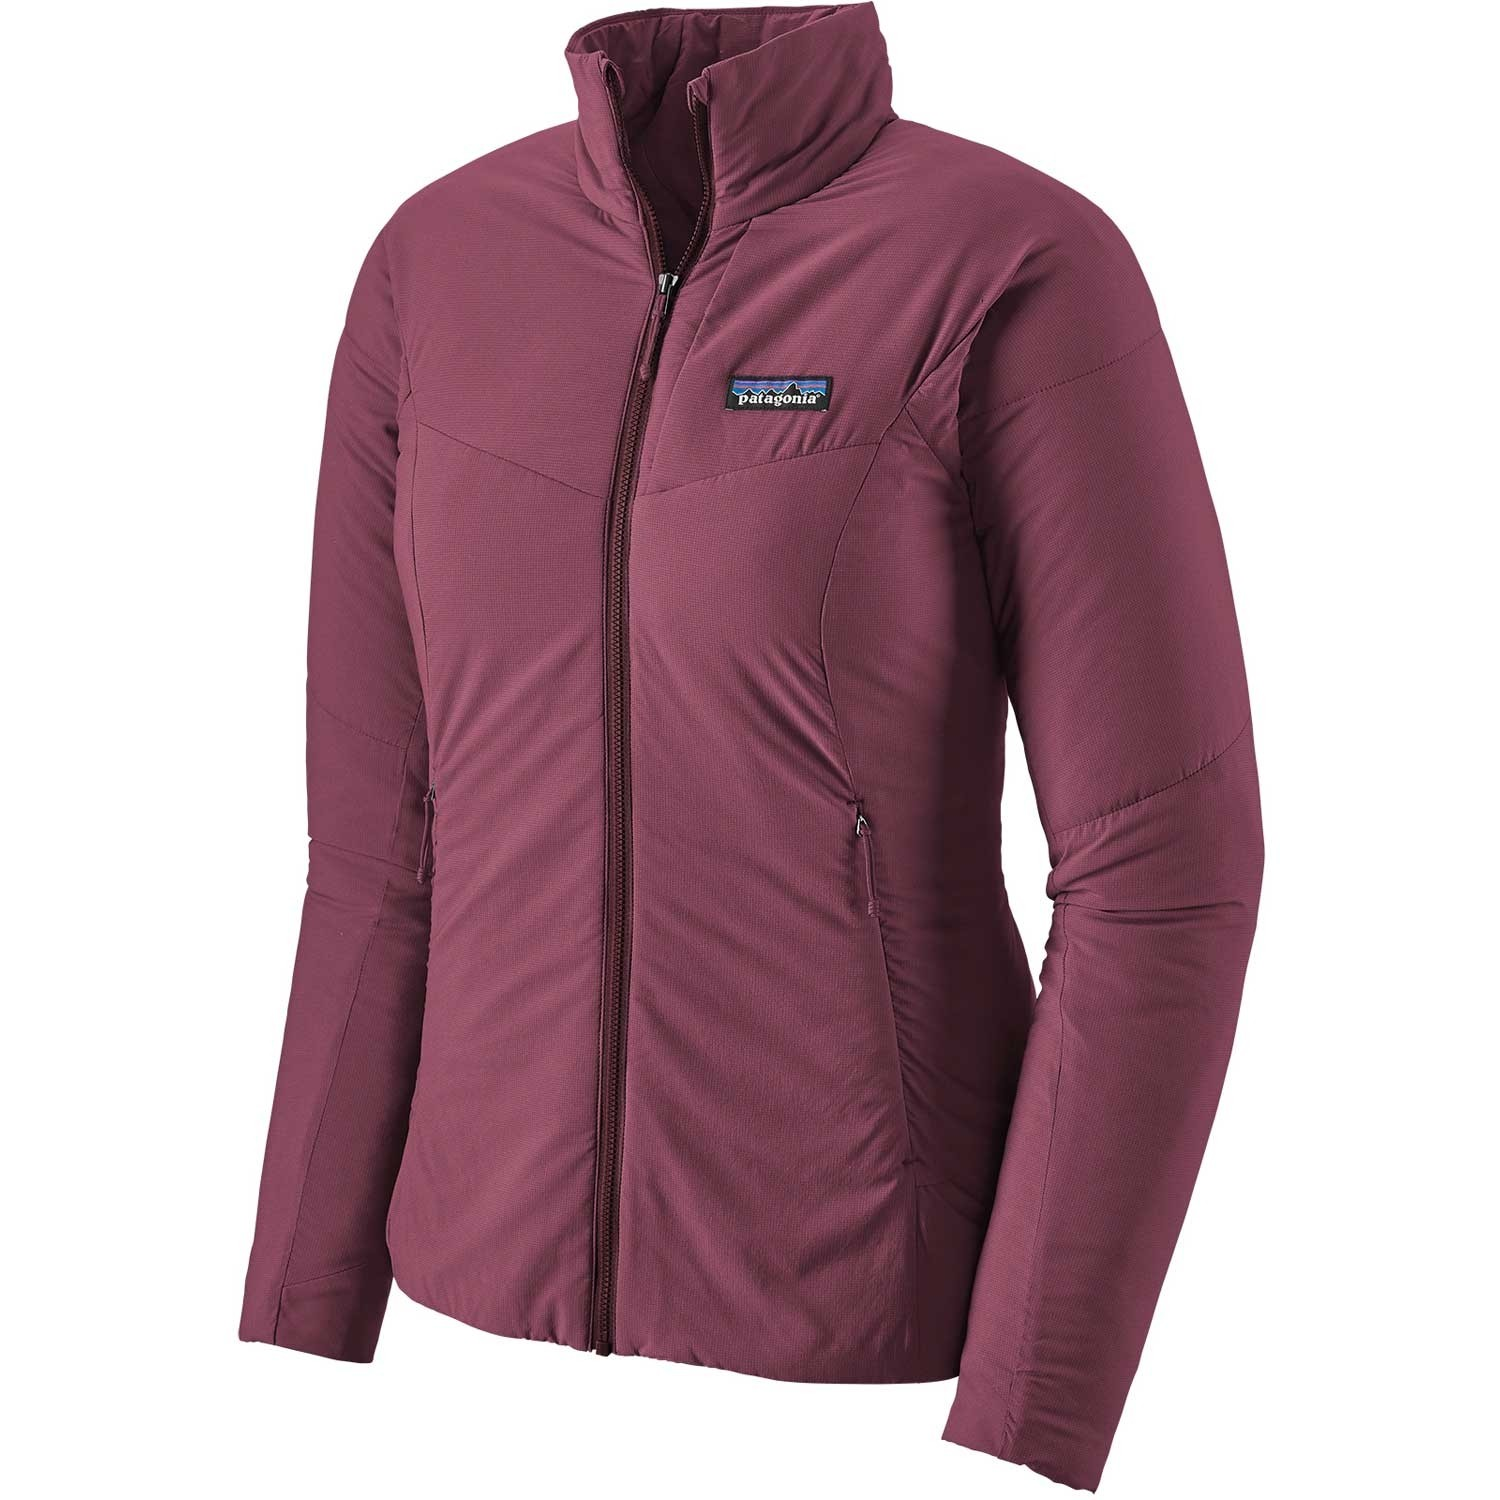 Patagonia Nano-Air Women's Insulated Jacket - Light Balsamic